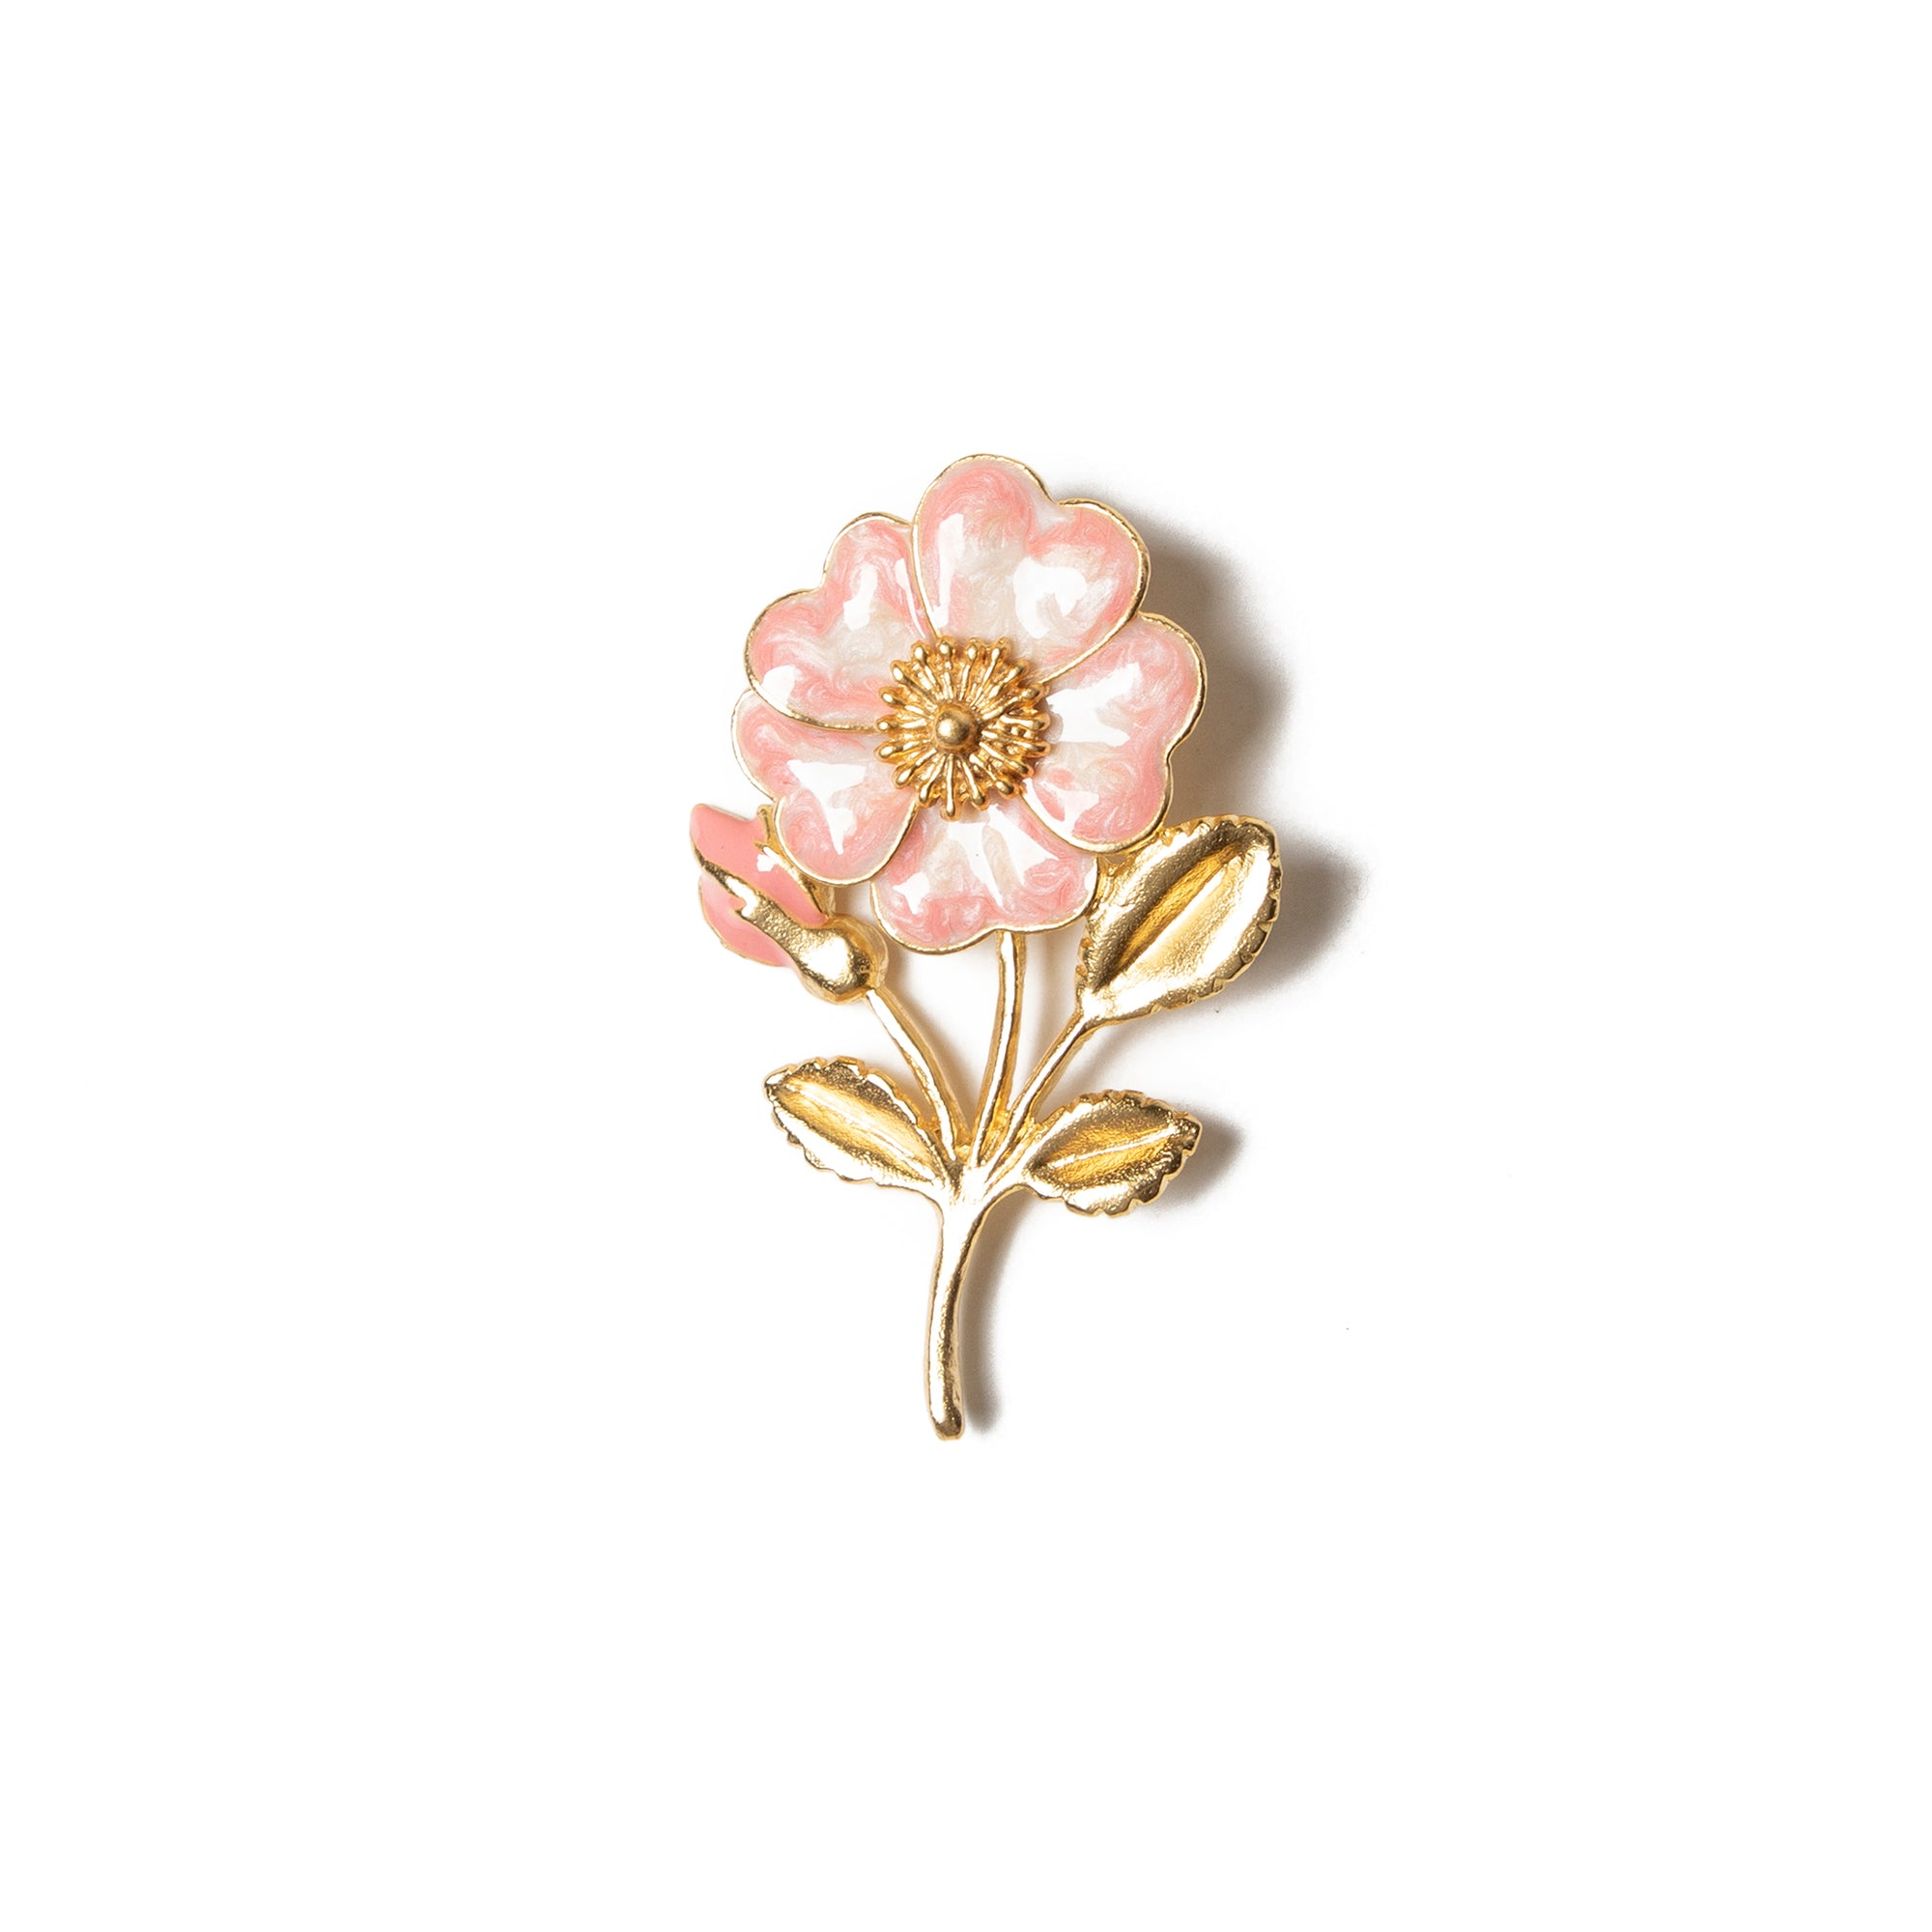 Manet Blossom Brooch | Getty Store